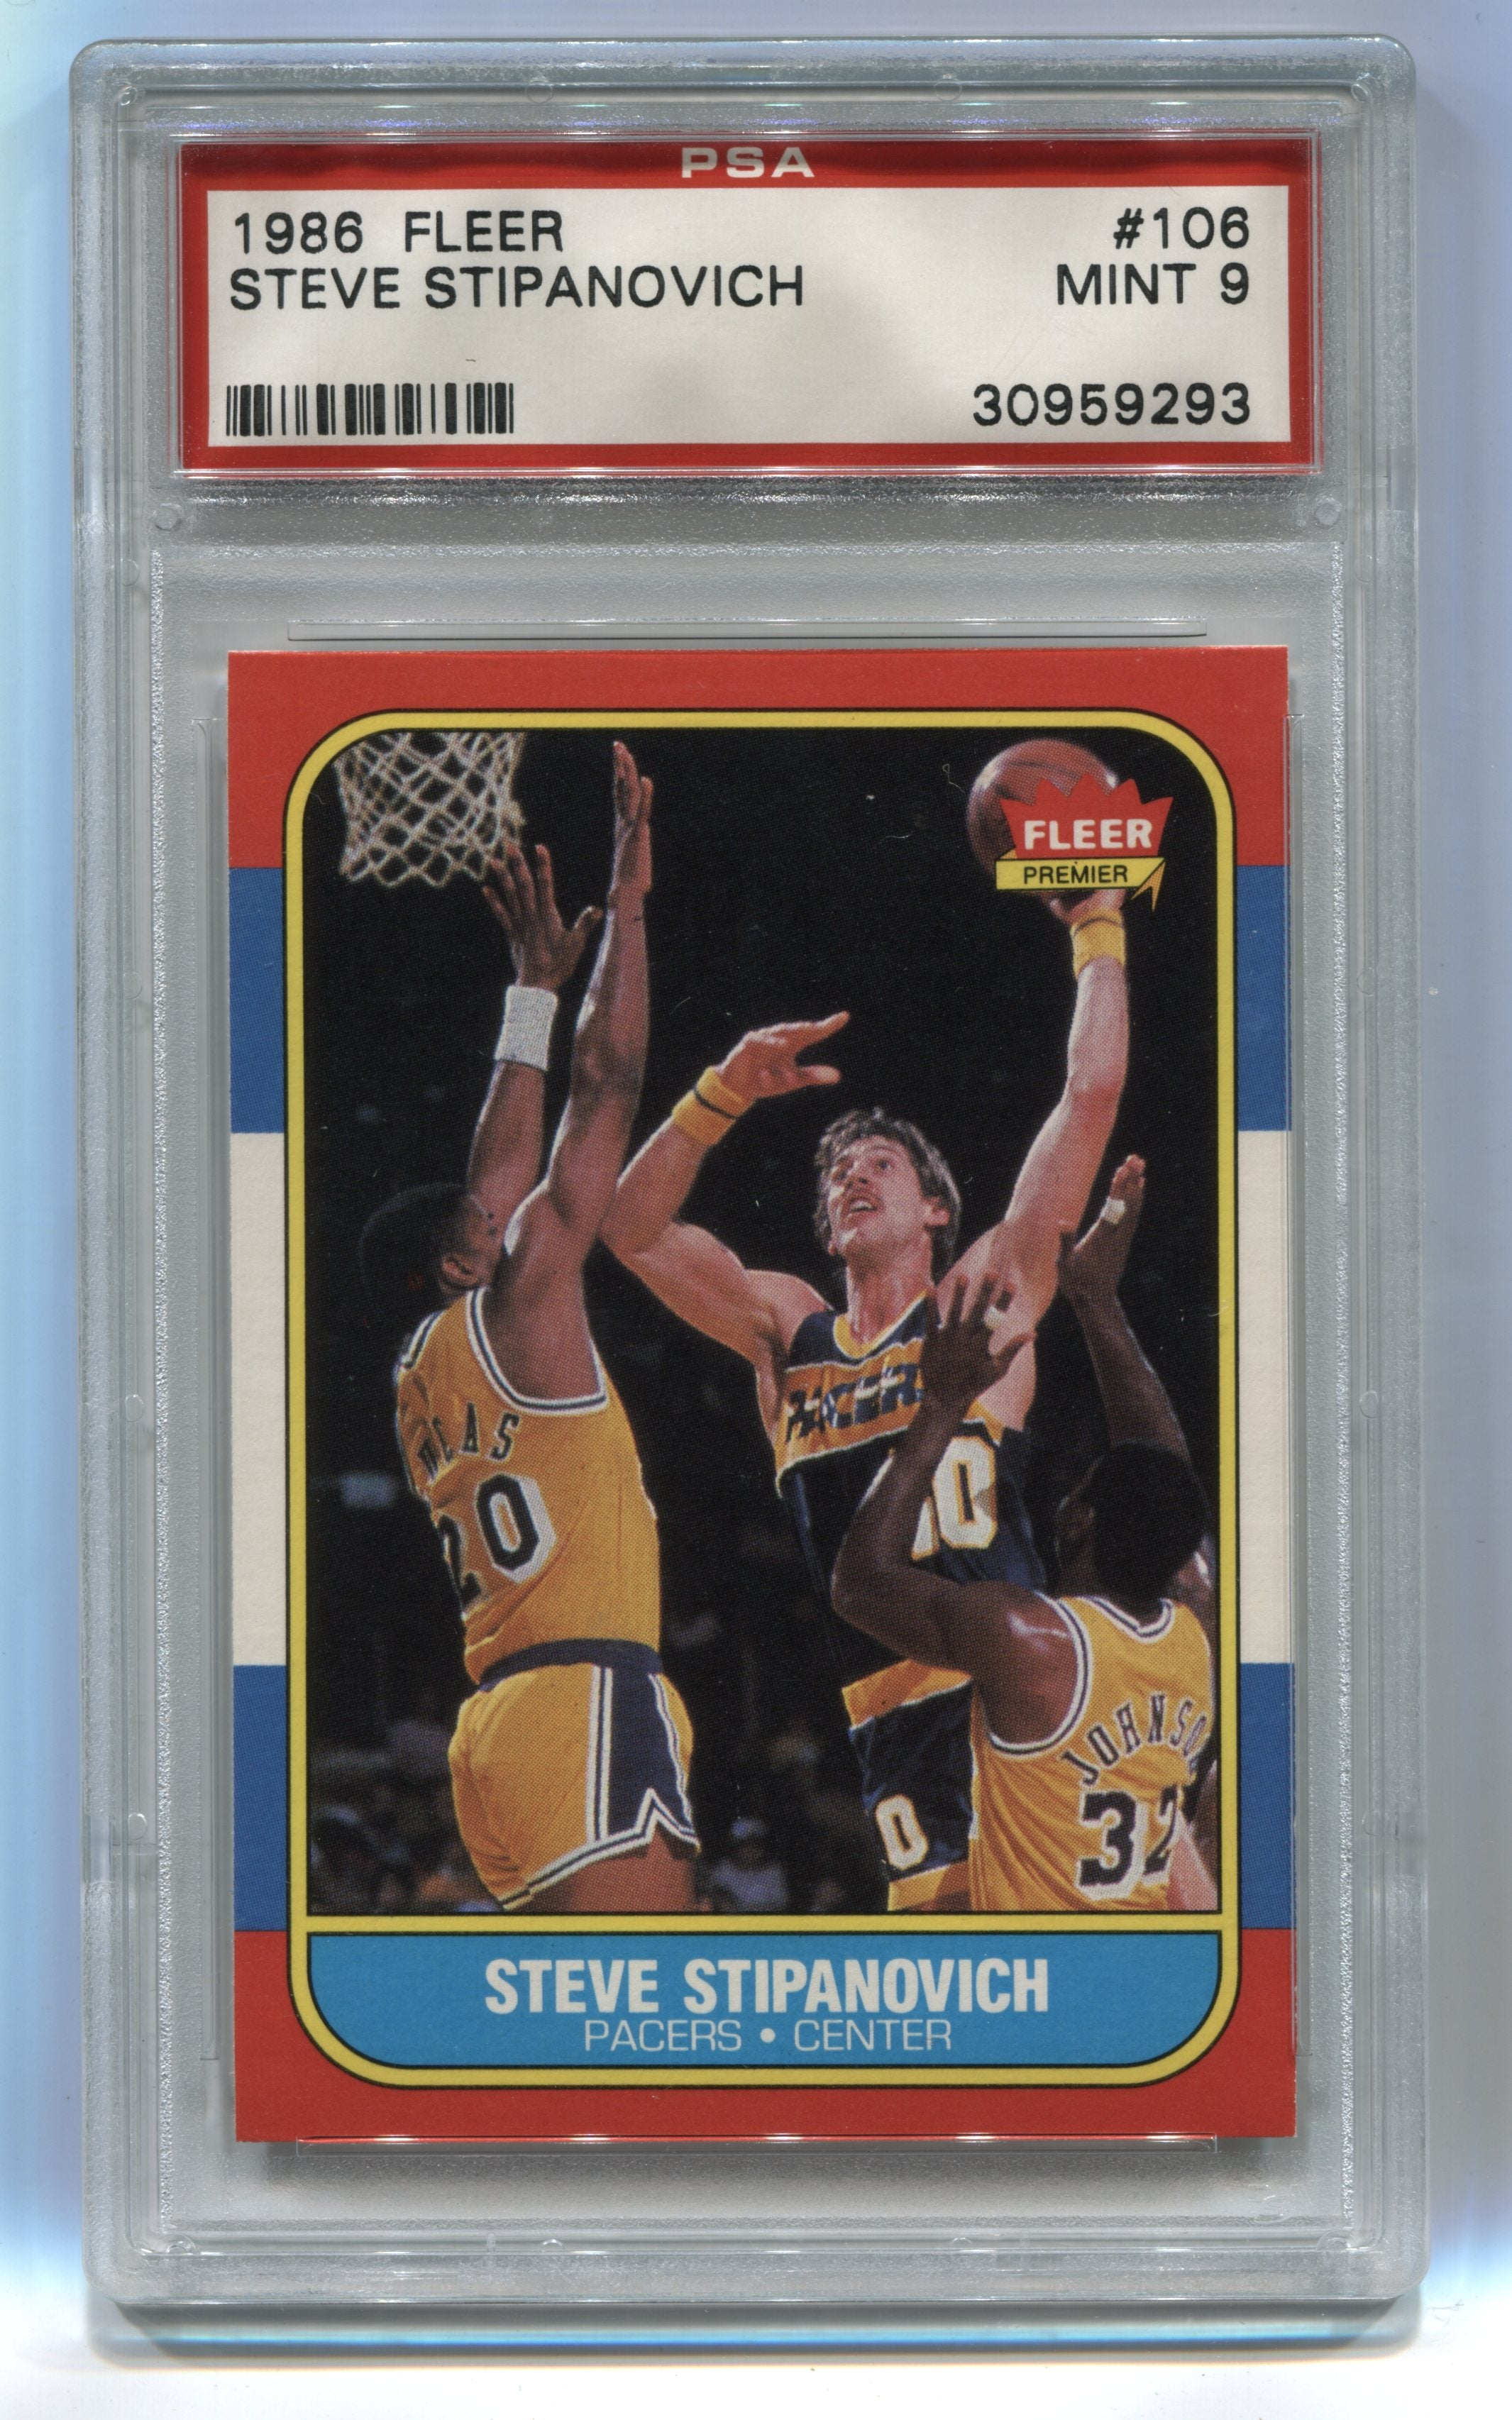 1986-87 Fleer #106 Steve Stipanovich PSA 9 | Eastridge Sports Cards